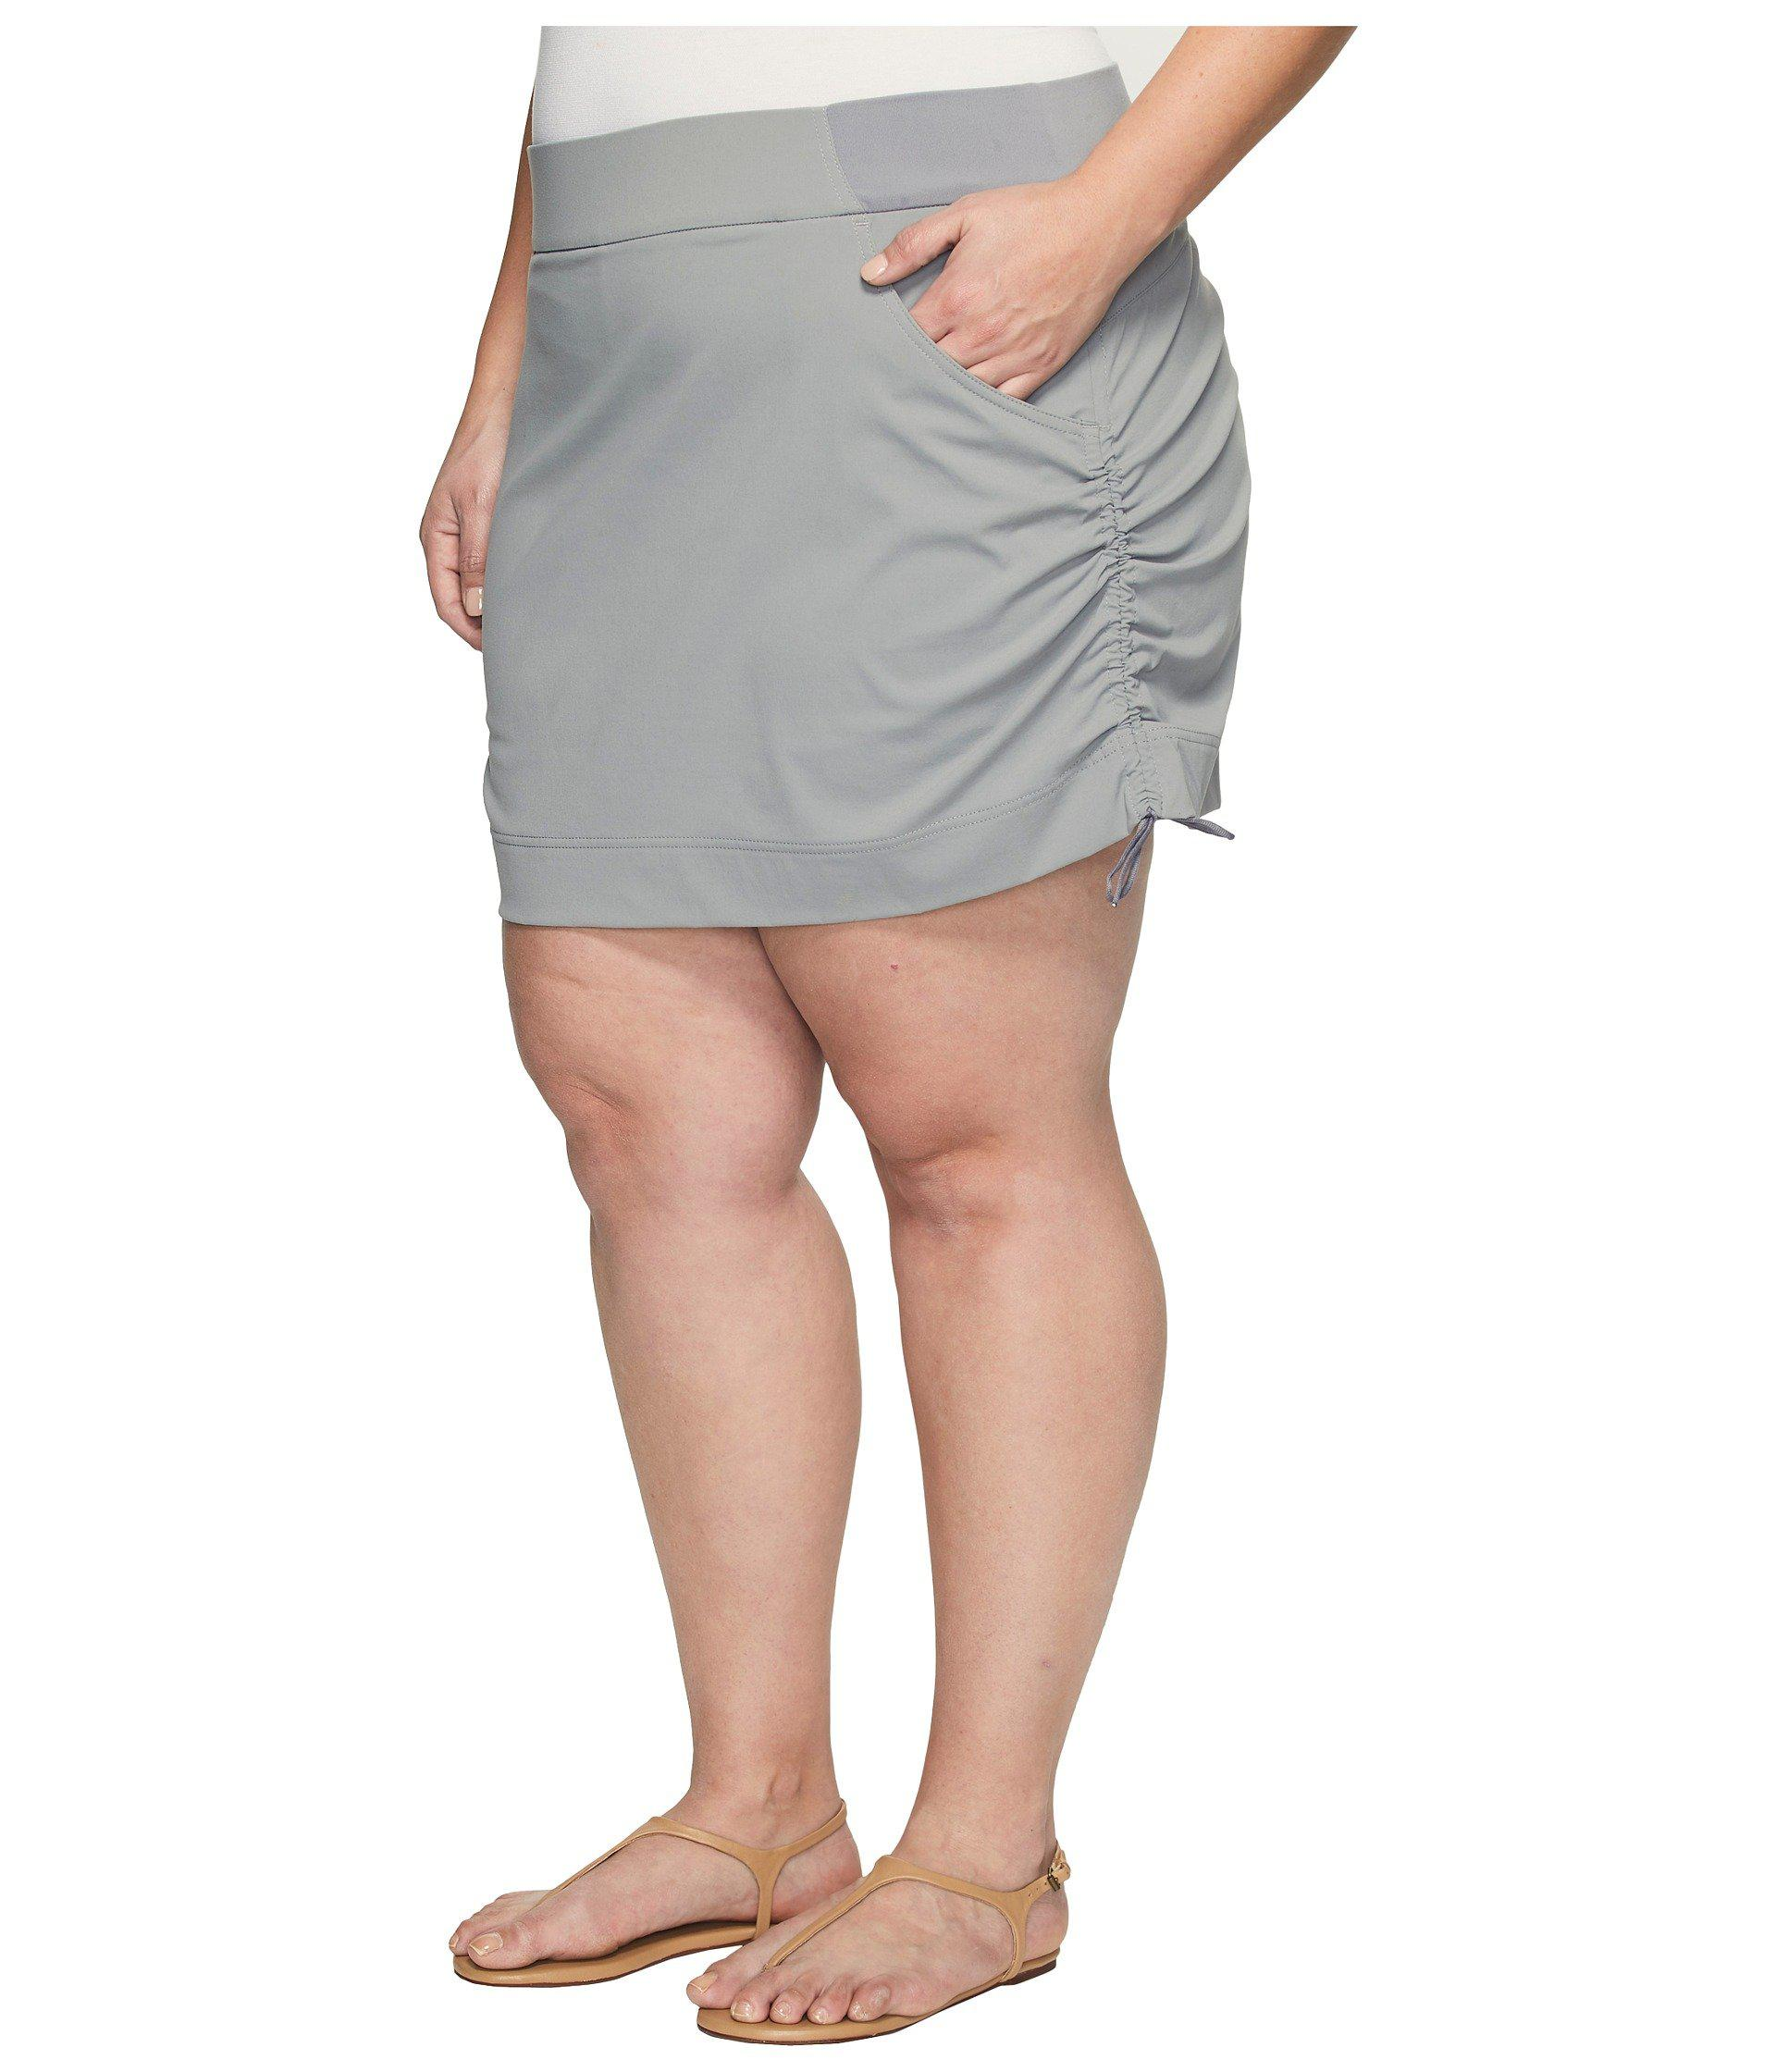 5cfbe7dab81 Lyst - Columbia Plus Size Anytime Casualtm Skort (light Grey) Women s Skort  in Gray - Save 25%